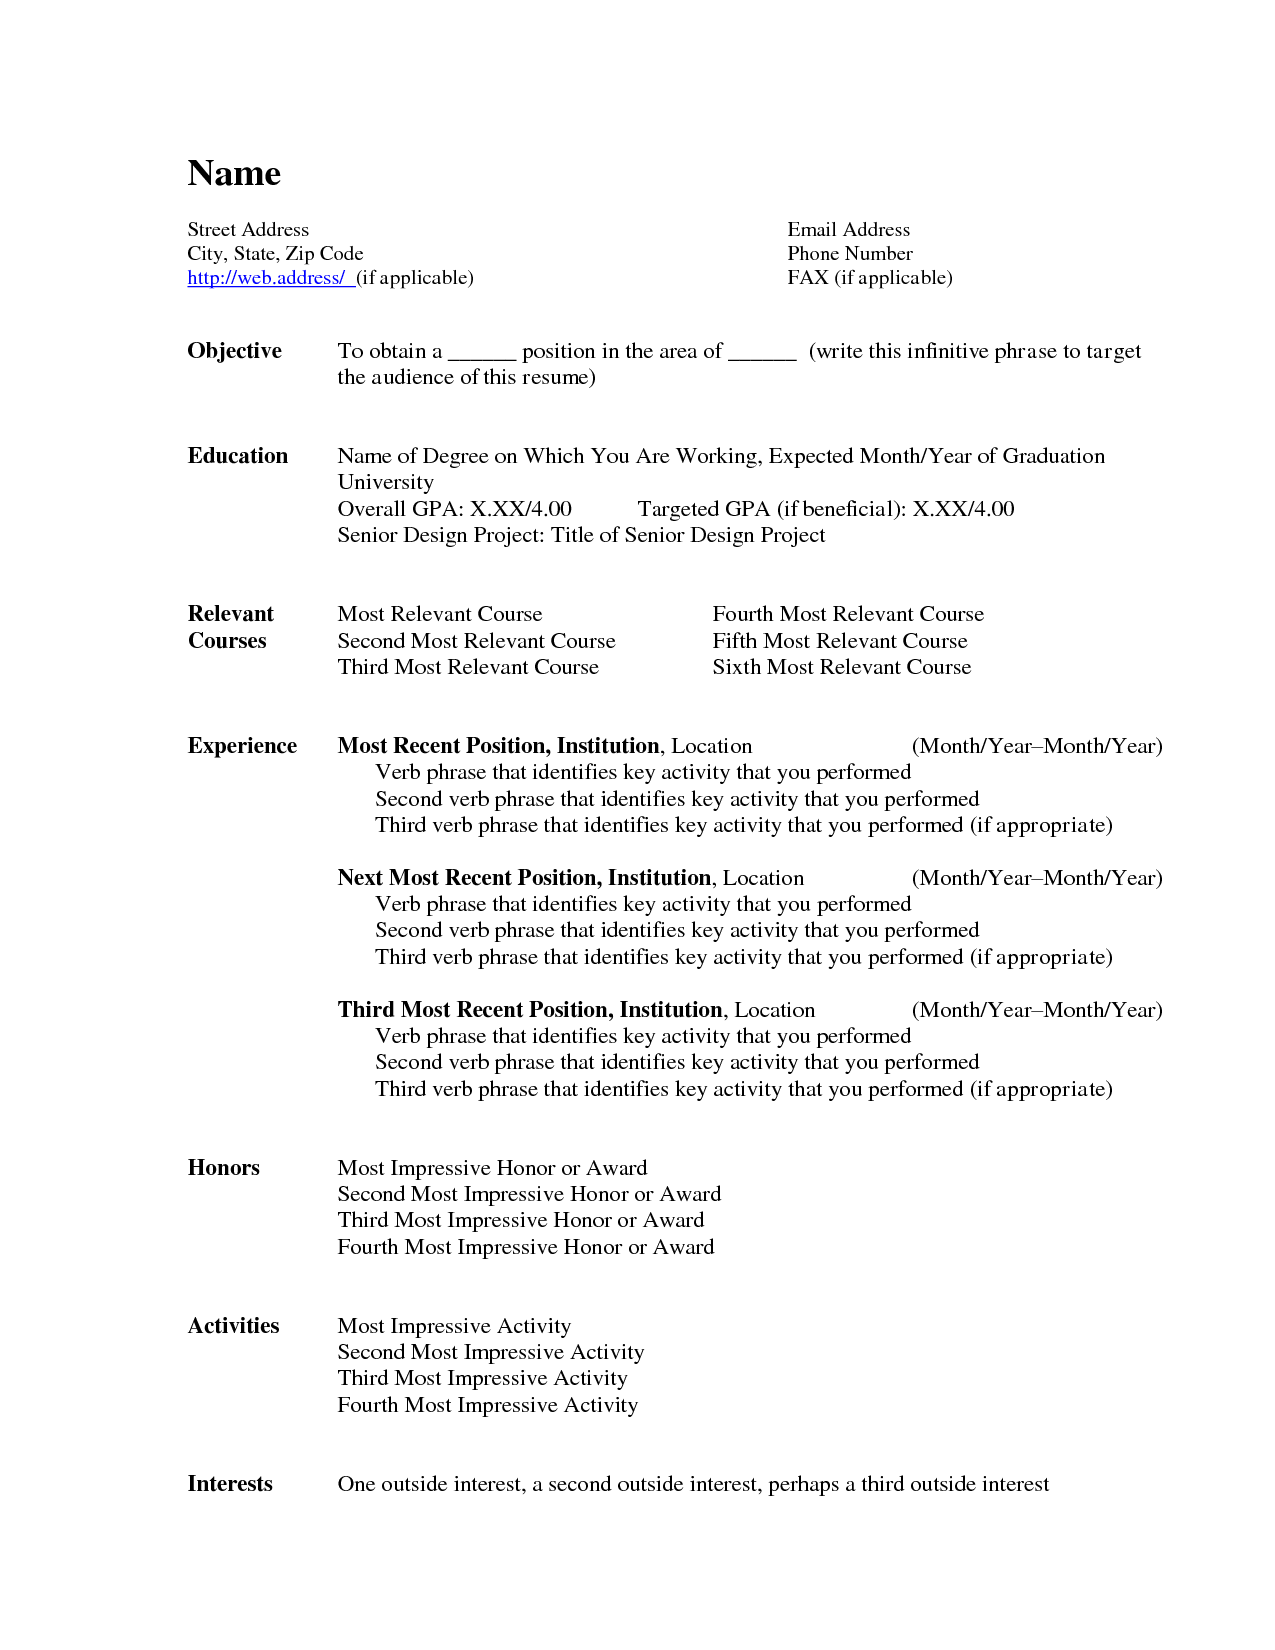 microsoft word resume template resume builder resume resume httpwww jobresume - Job Resume Template Microsoft Word